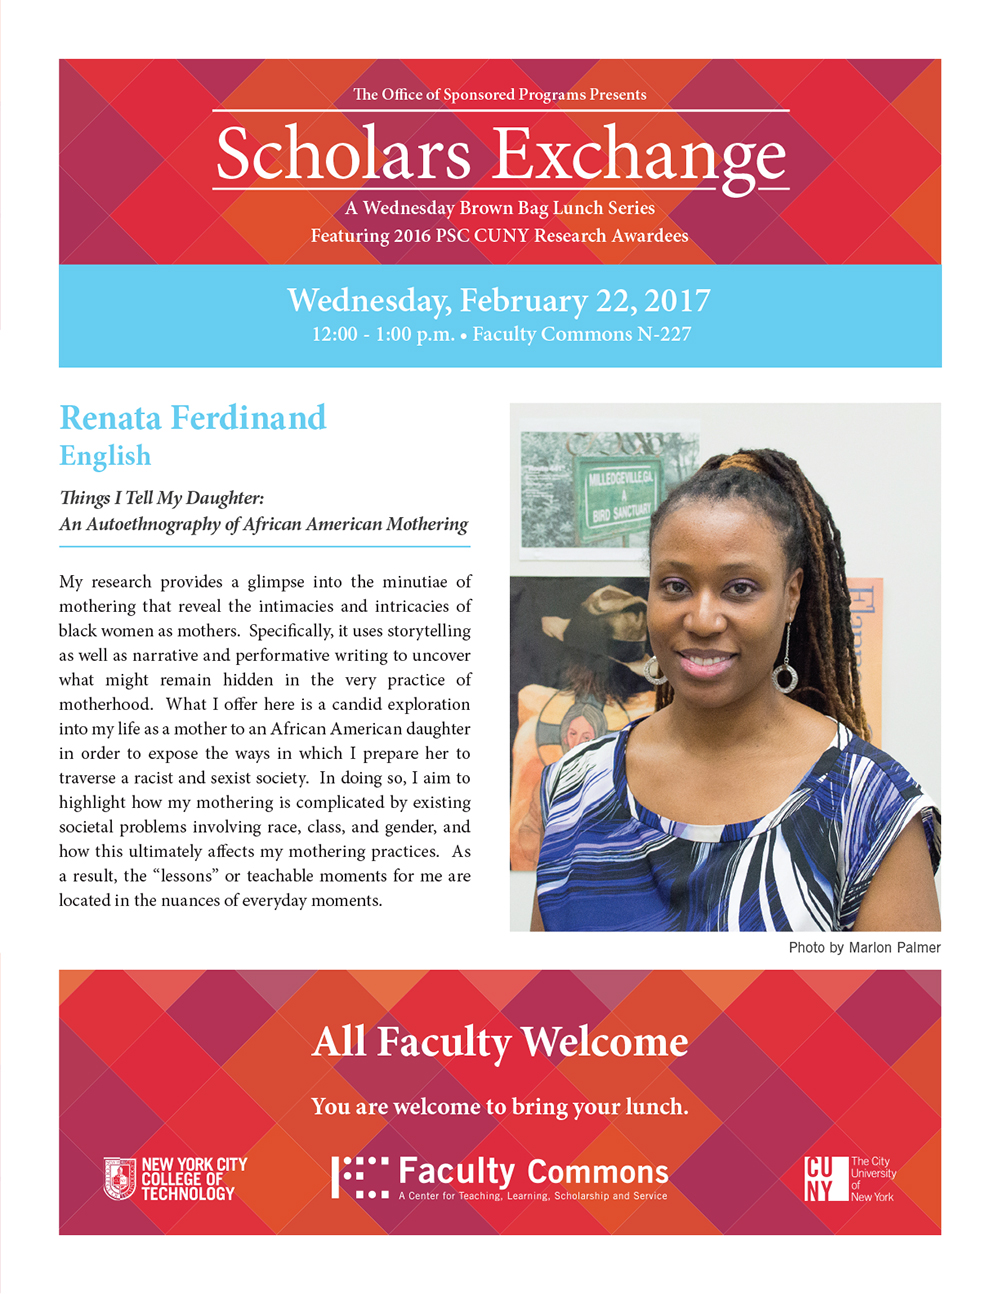 Scholars Exchange<br>Things I Tell My Daughter: An Auto-ethnography of African American Mothering 1